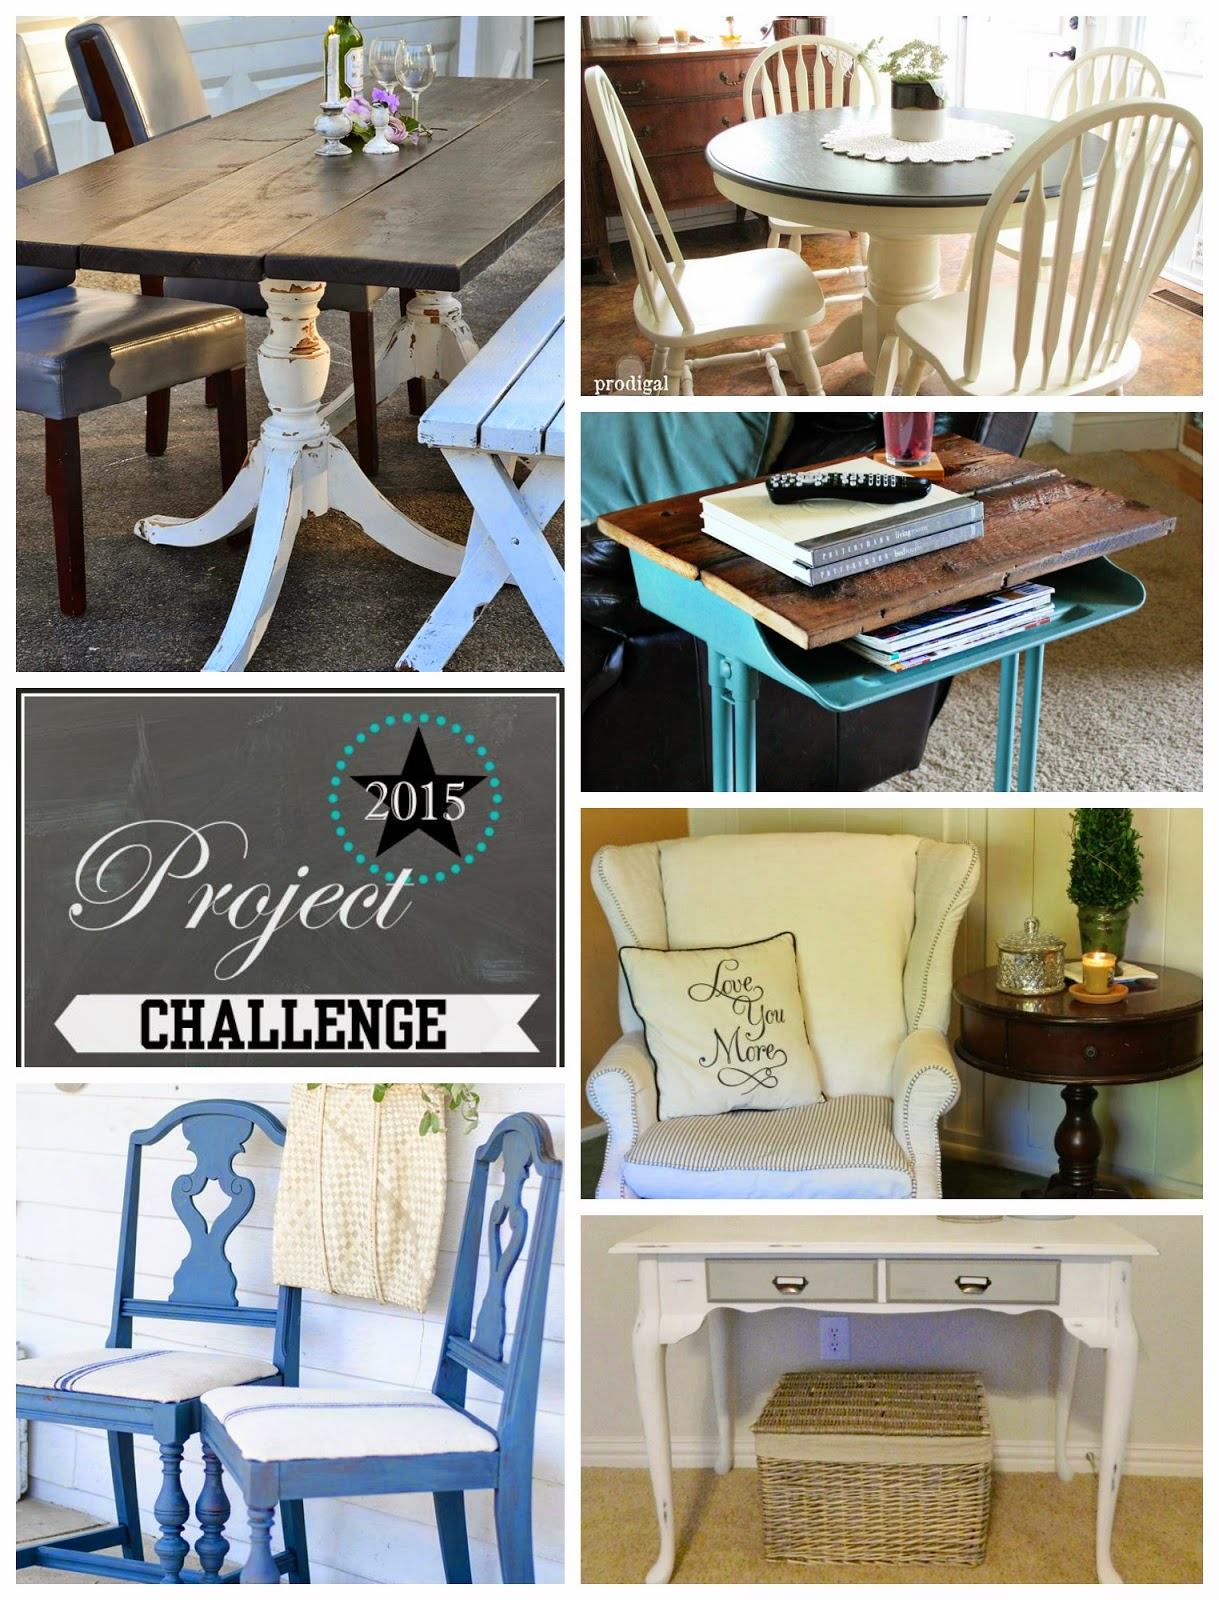 school, desk, furniture makeover, fusion mineral paint, project challenge, beyond the picket fence, http://bec4-beyondthepicketfence.blogspot.com/2015/04/project-challenge-furniture-school-desk.html